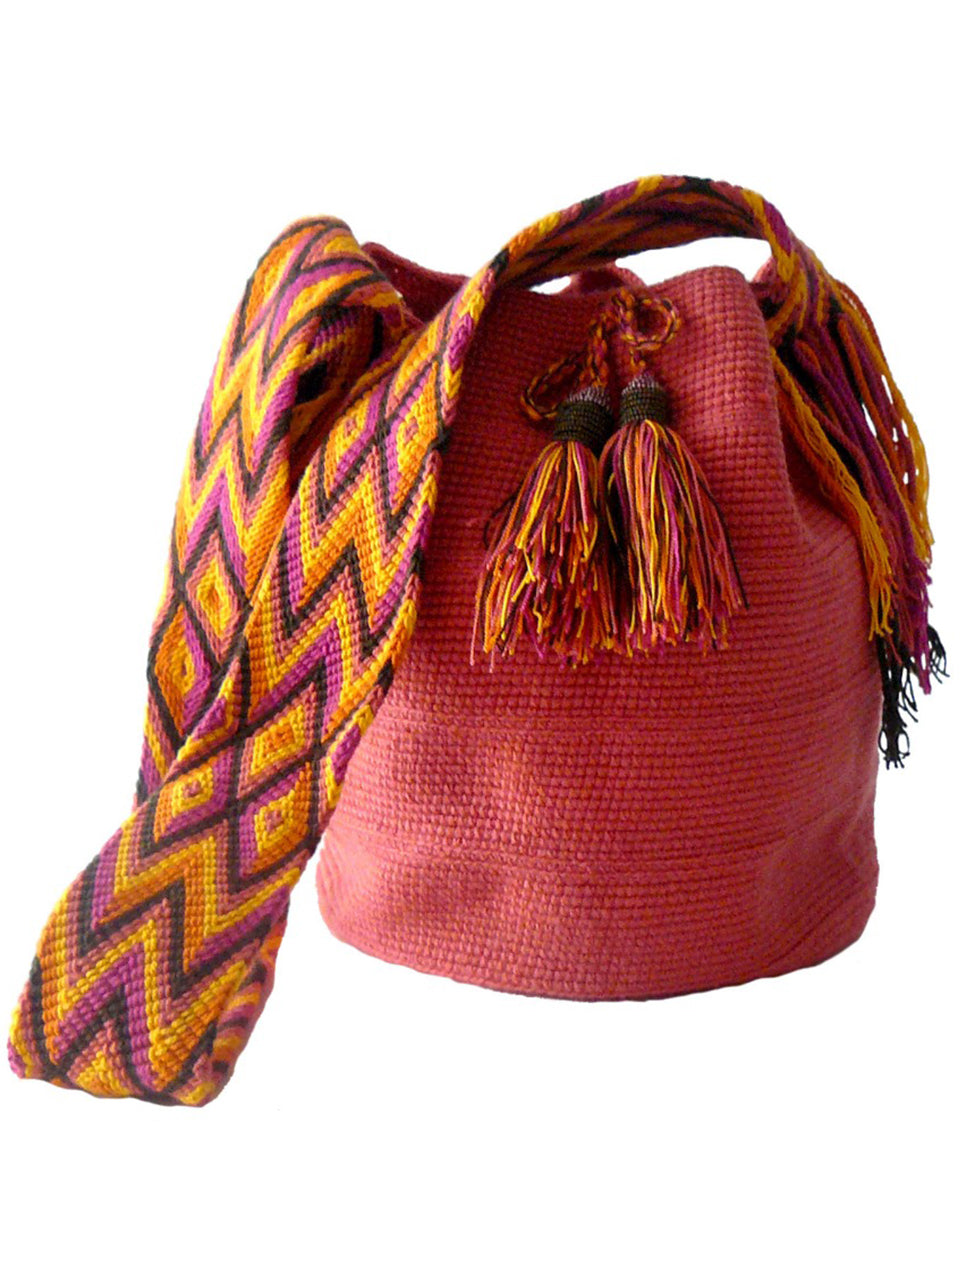 Pink woven shoulder bag with tassels and beads Palmazul Beachwear Wayuu Mochila